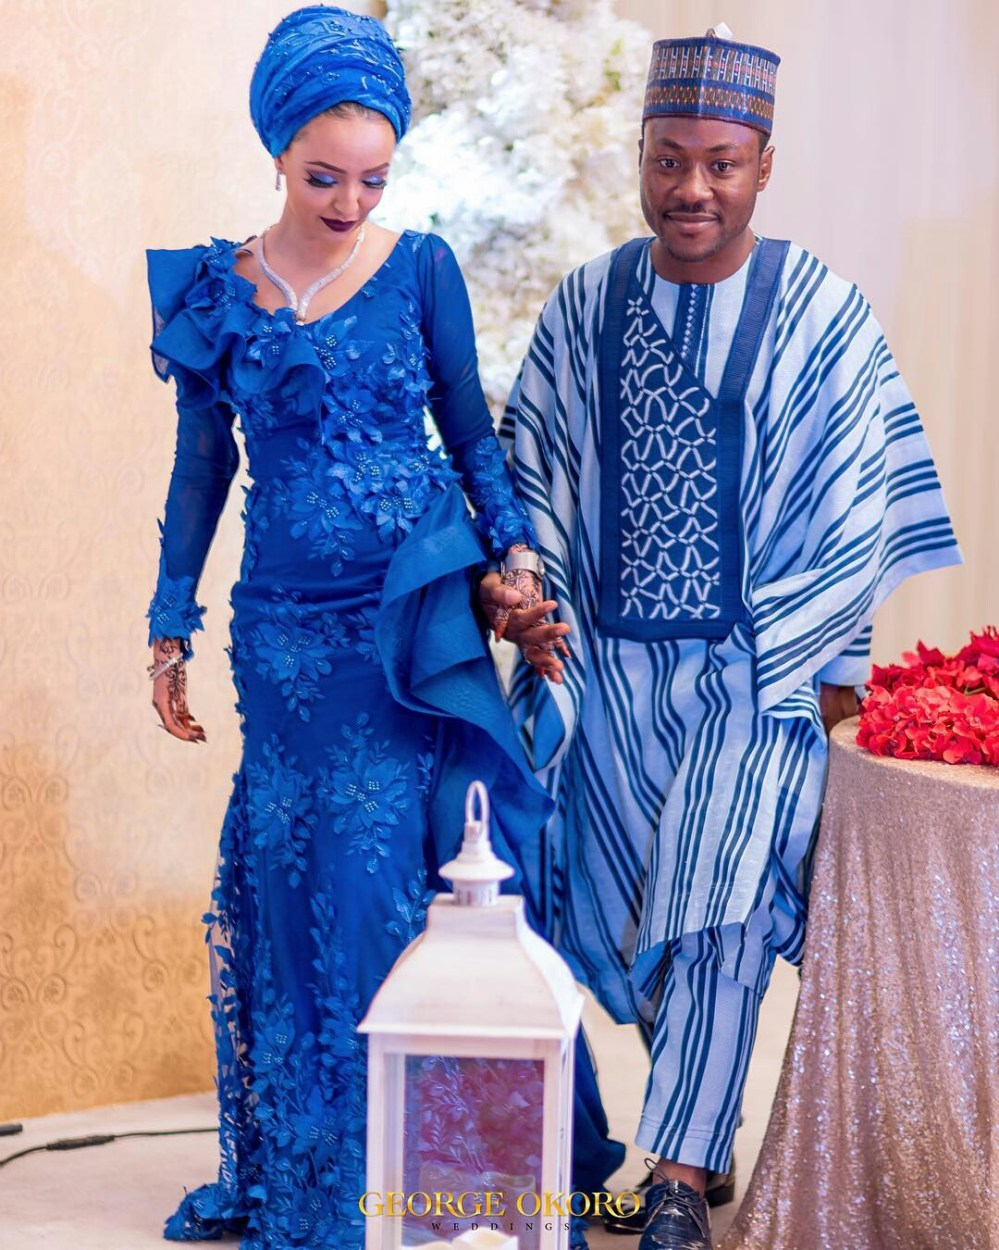 Hausa groom in blue striped outfit